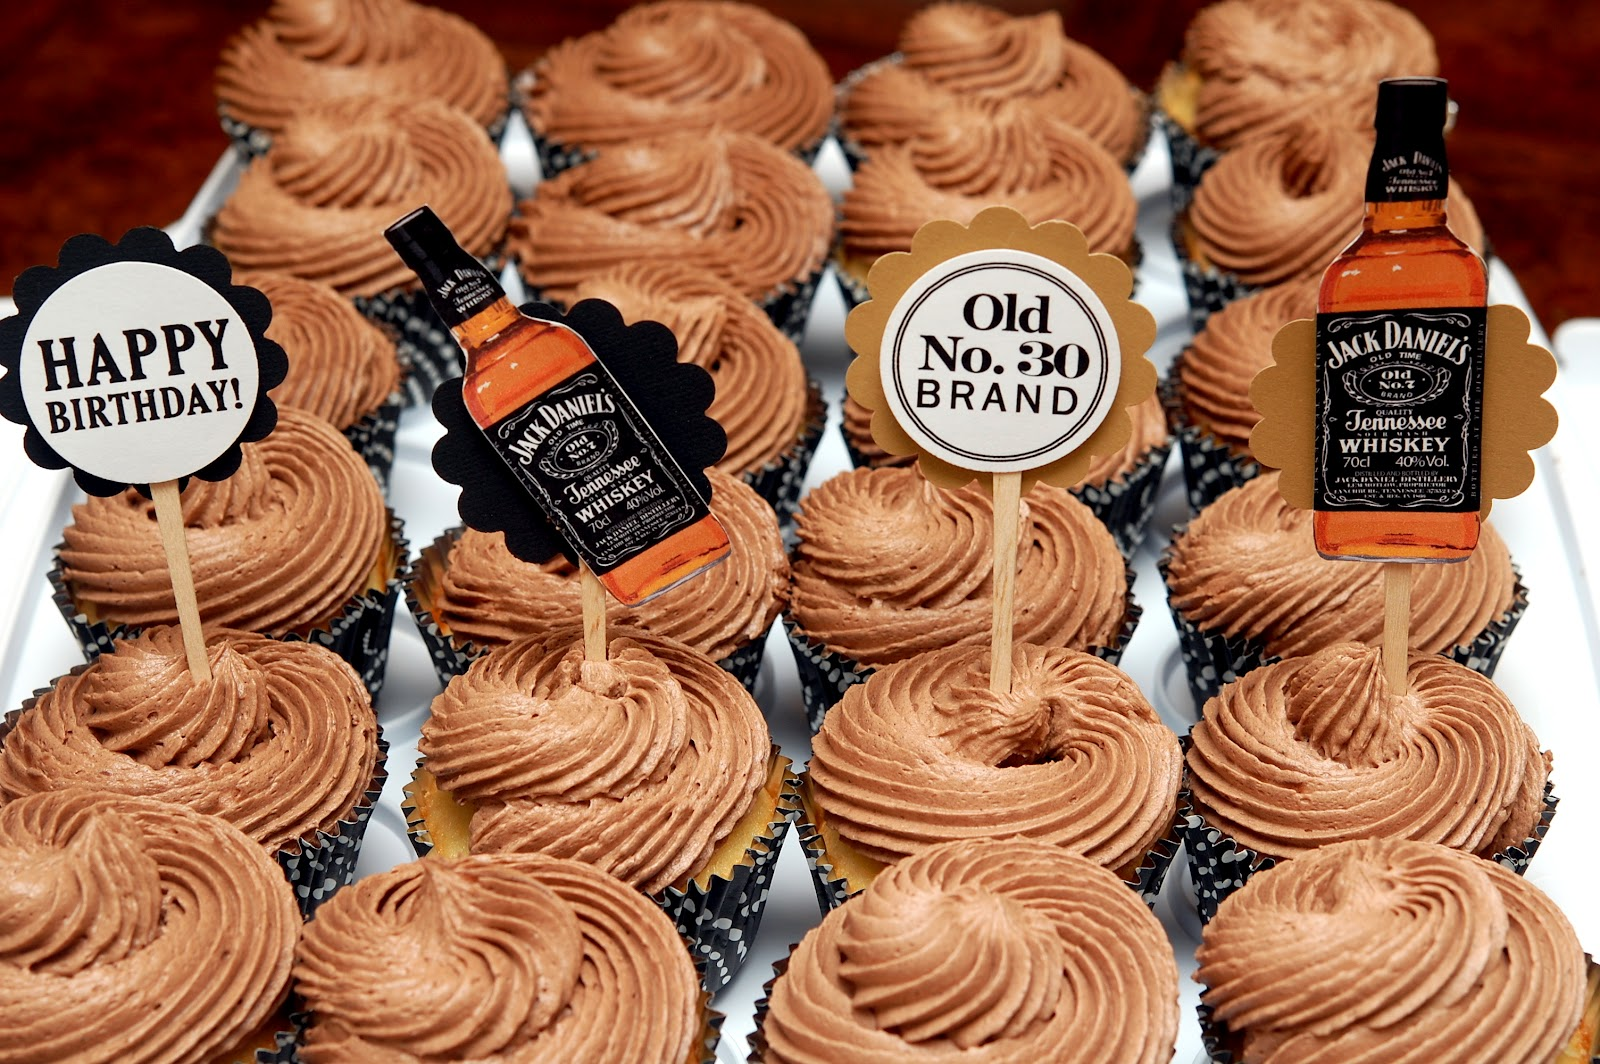 JACK DANIEL\u0027S CUPCAKES FOR THE GROWN UPS! , Hugs and Cookies